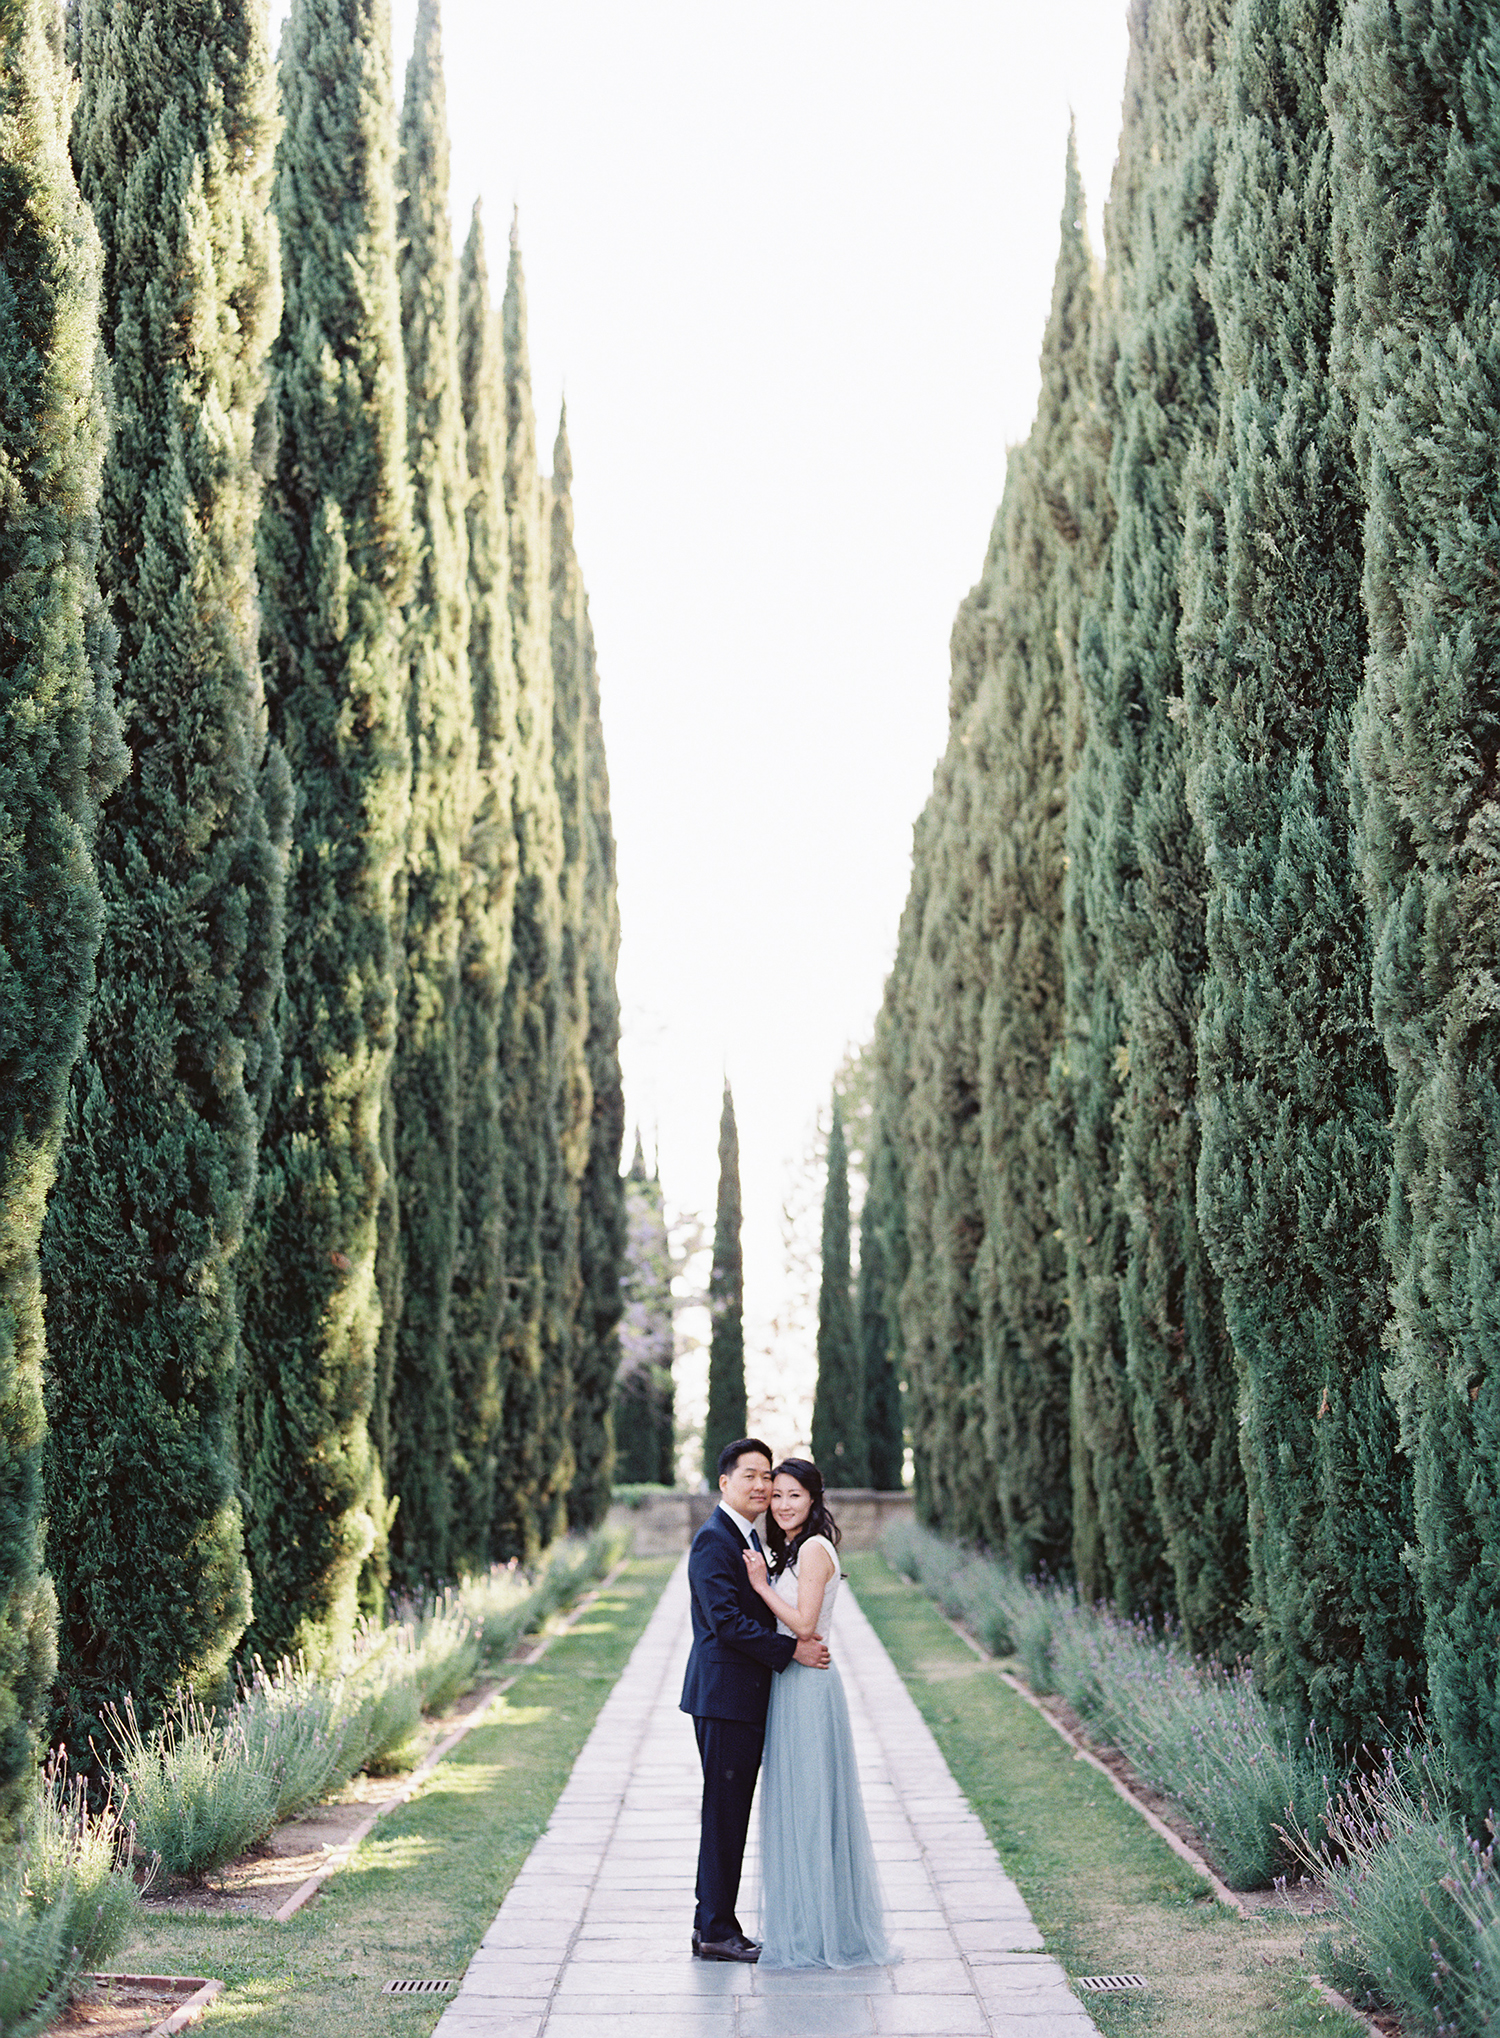 engagement session in los angeles california at greystone mansion